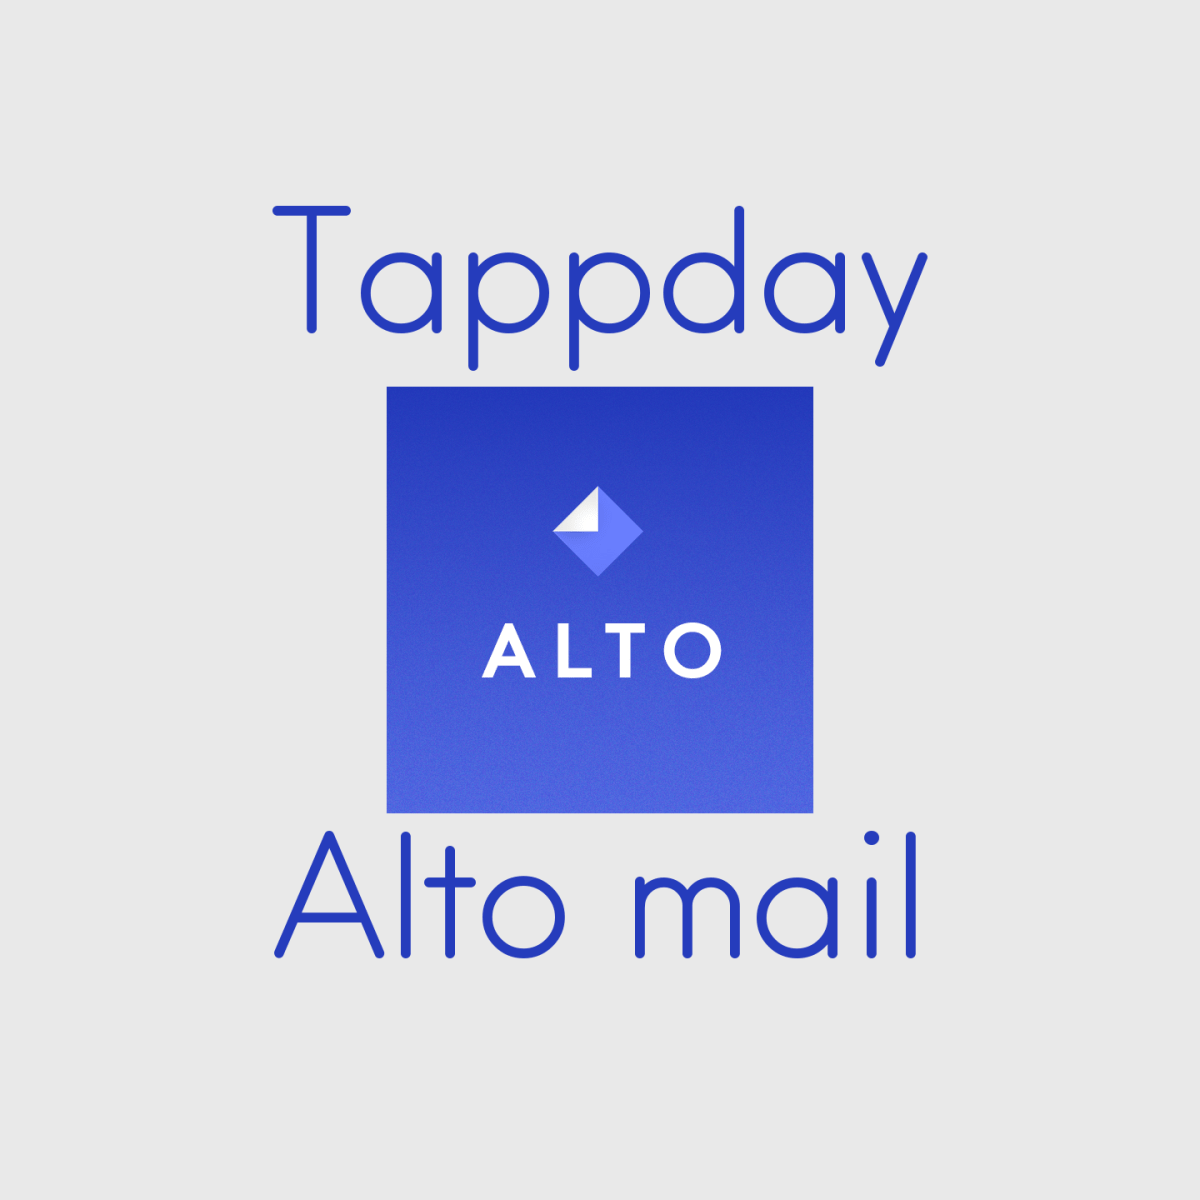 Tappday: Alto mail